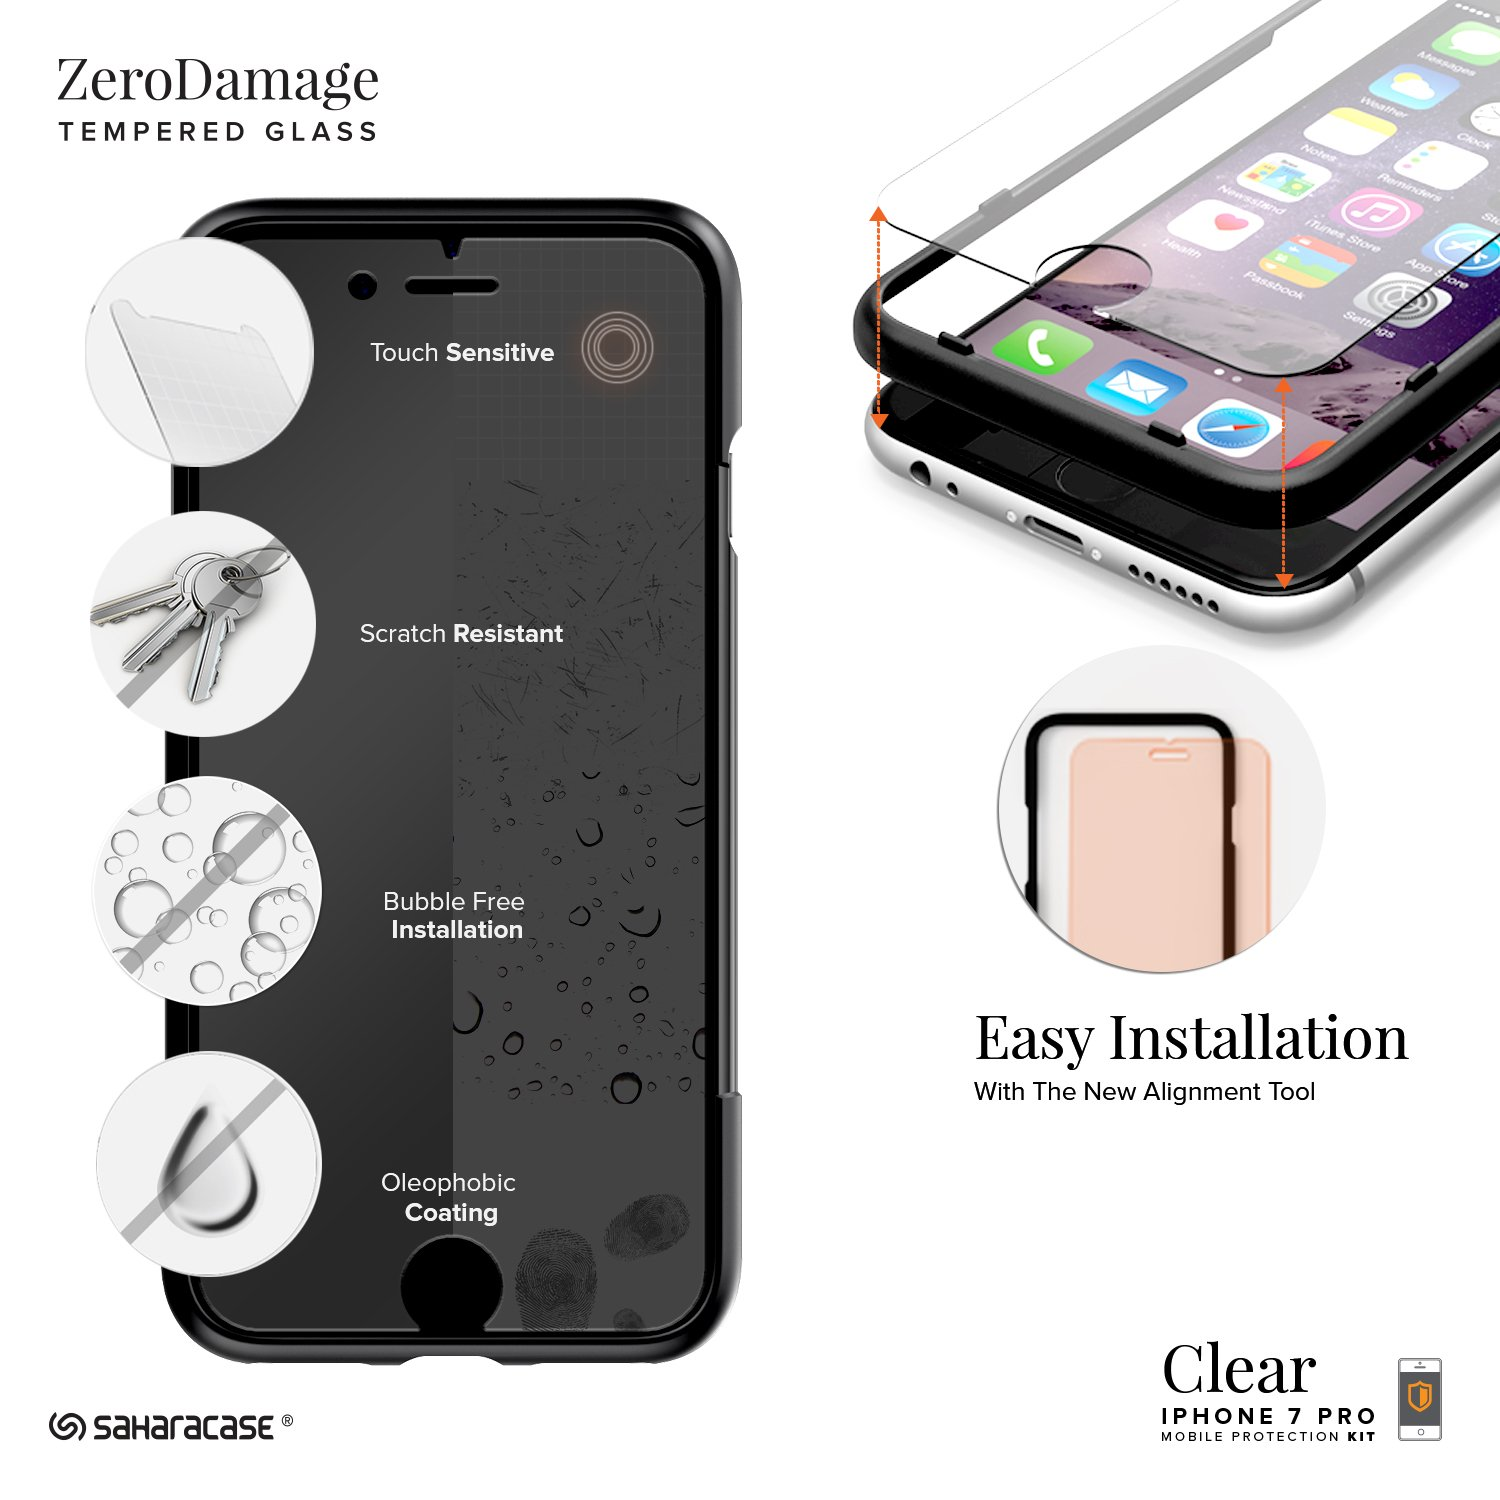 Saharacase iphone 6 6s crystal clear case rose gold edge saharacase - Amazon Com Iphone 8 Plus And 7 Plus Case Saharacase Clear Protective Kit Bundled With Zerodamage Tempered Glass Screen Protector Rugged Slim Fit